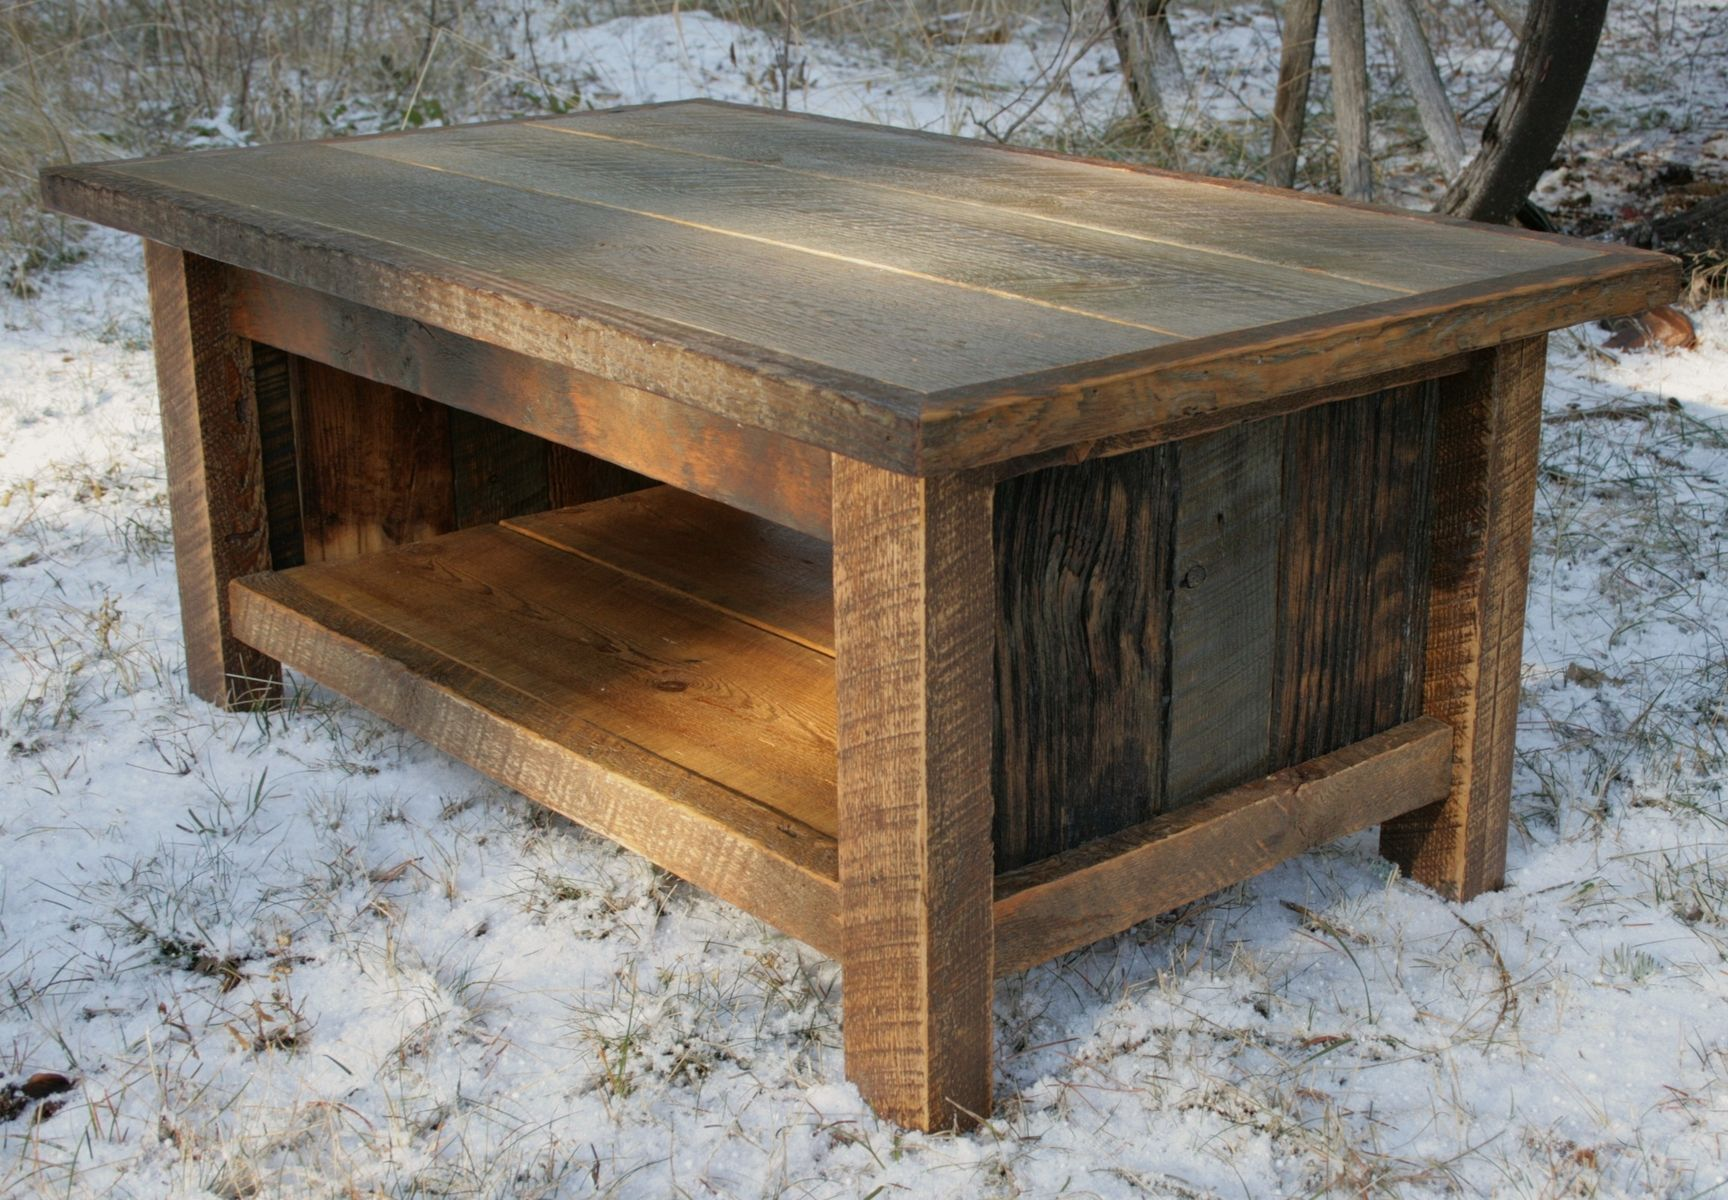 Hand Crafted Rustic Reclaimed Coffee Table By Echo Peak